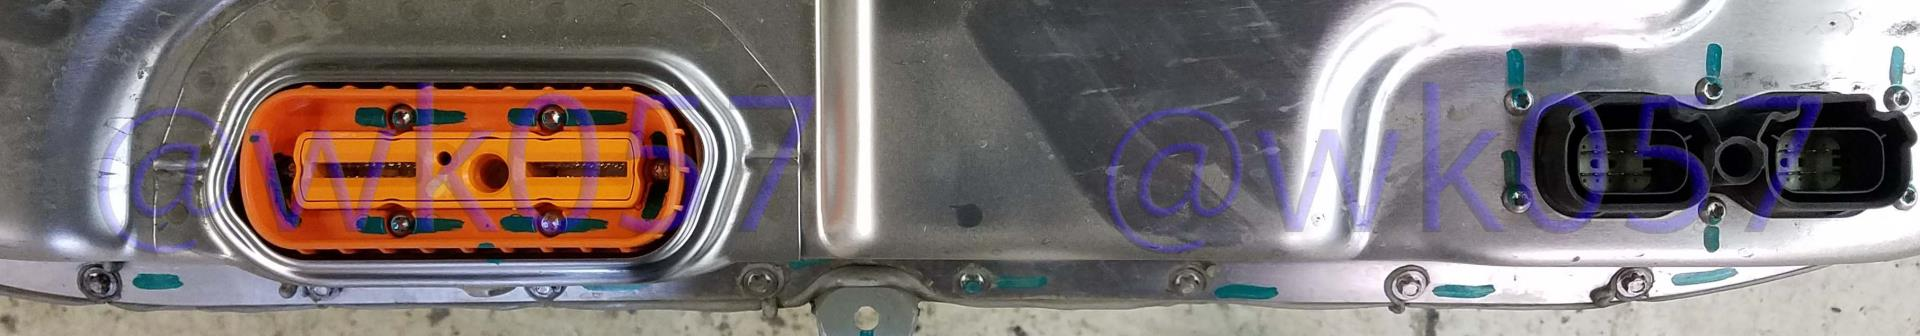 Tesla-85kwh-vs-P100D-battery-pack-connector